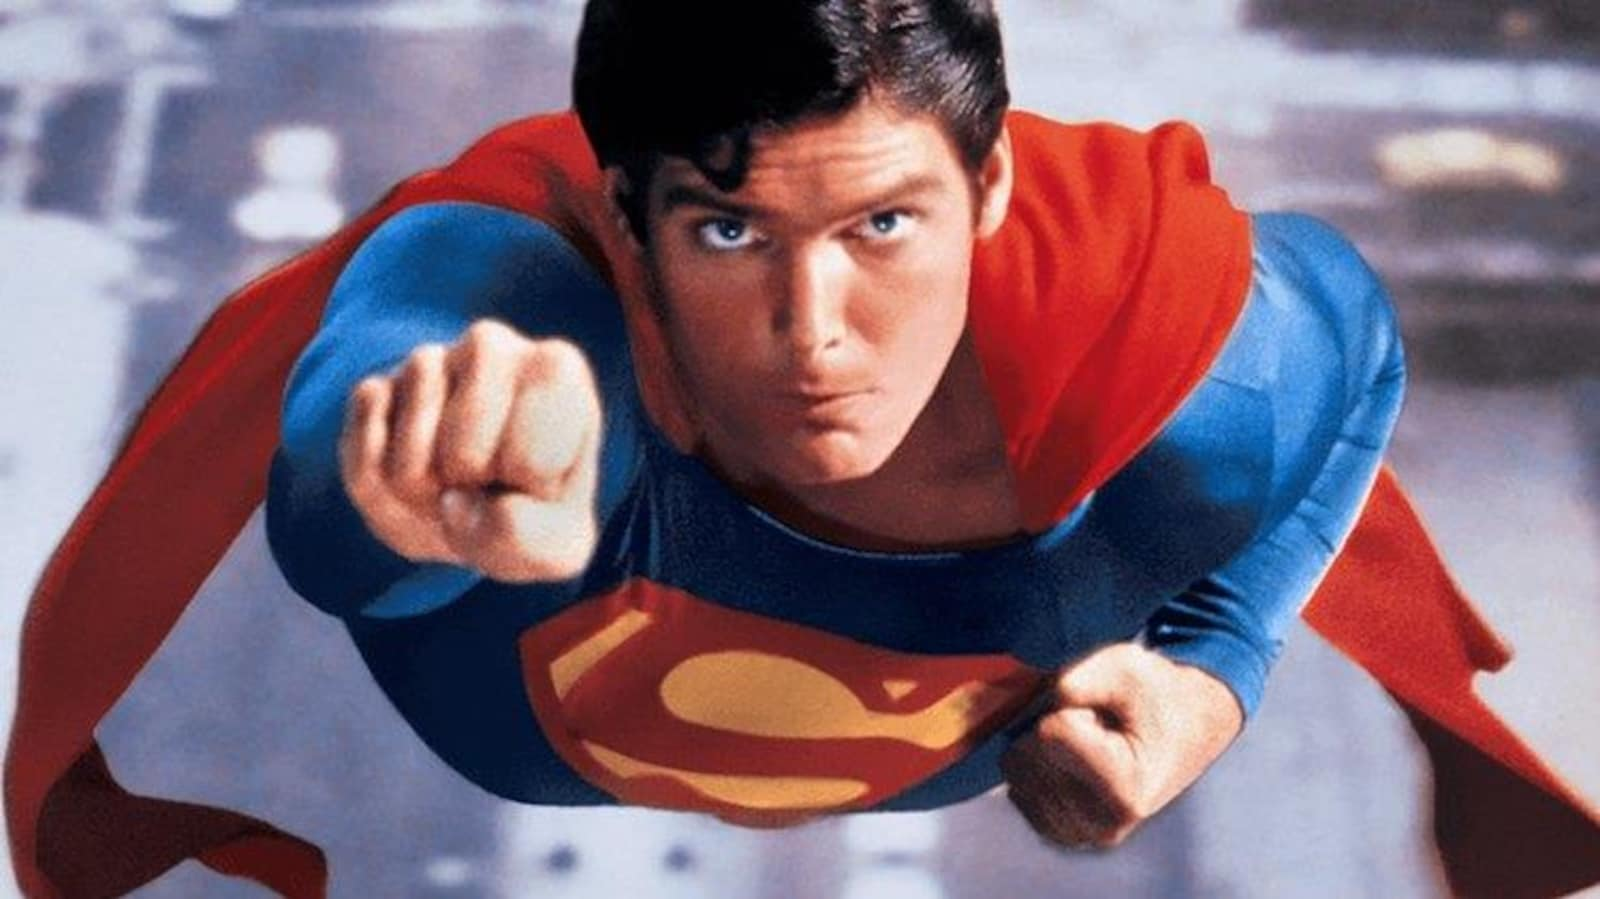 Christopher Reeve dans le rôle de Superman en 1978